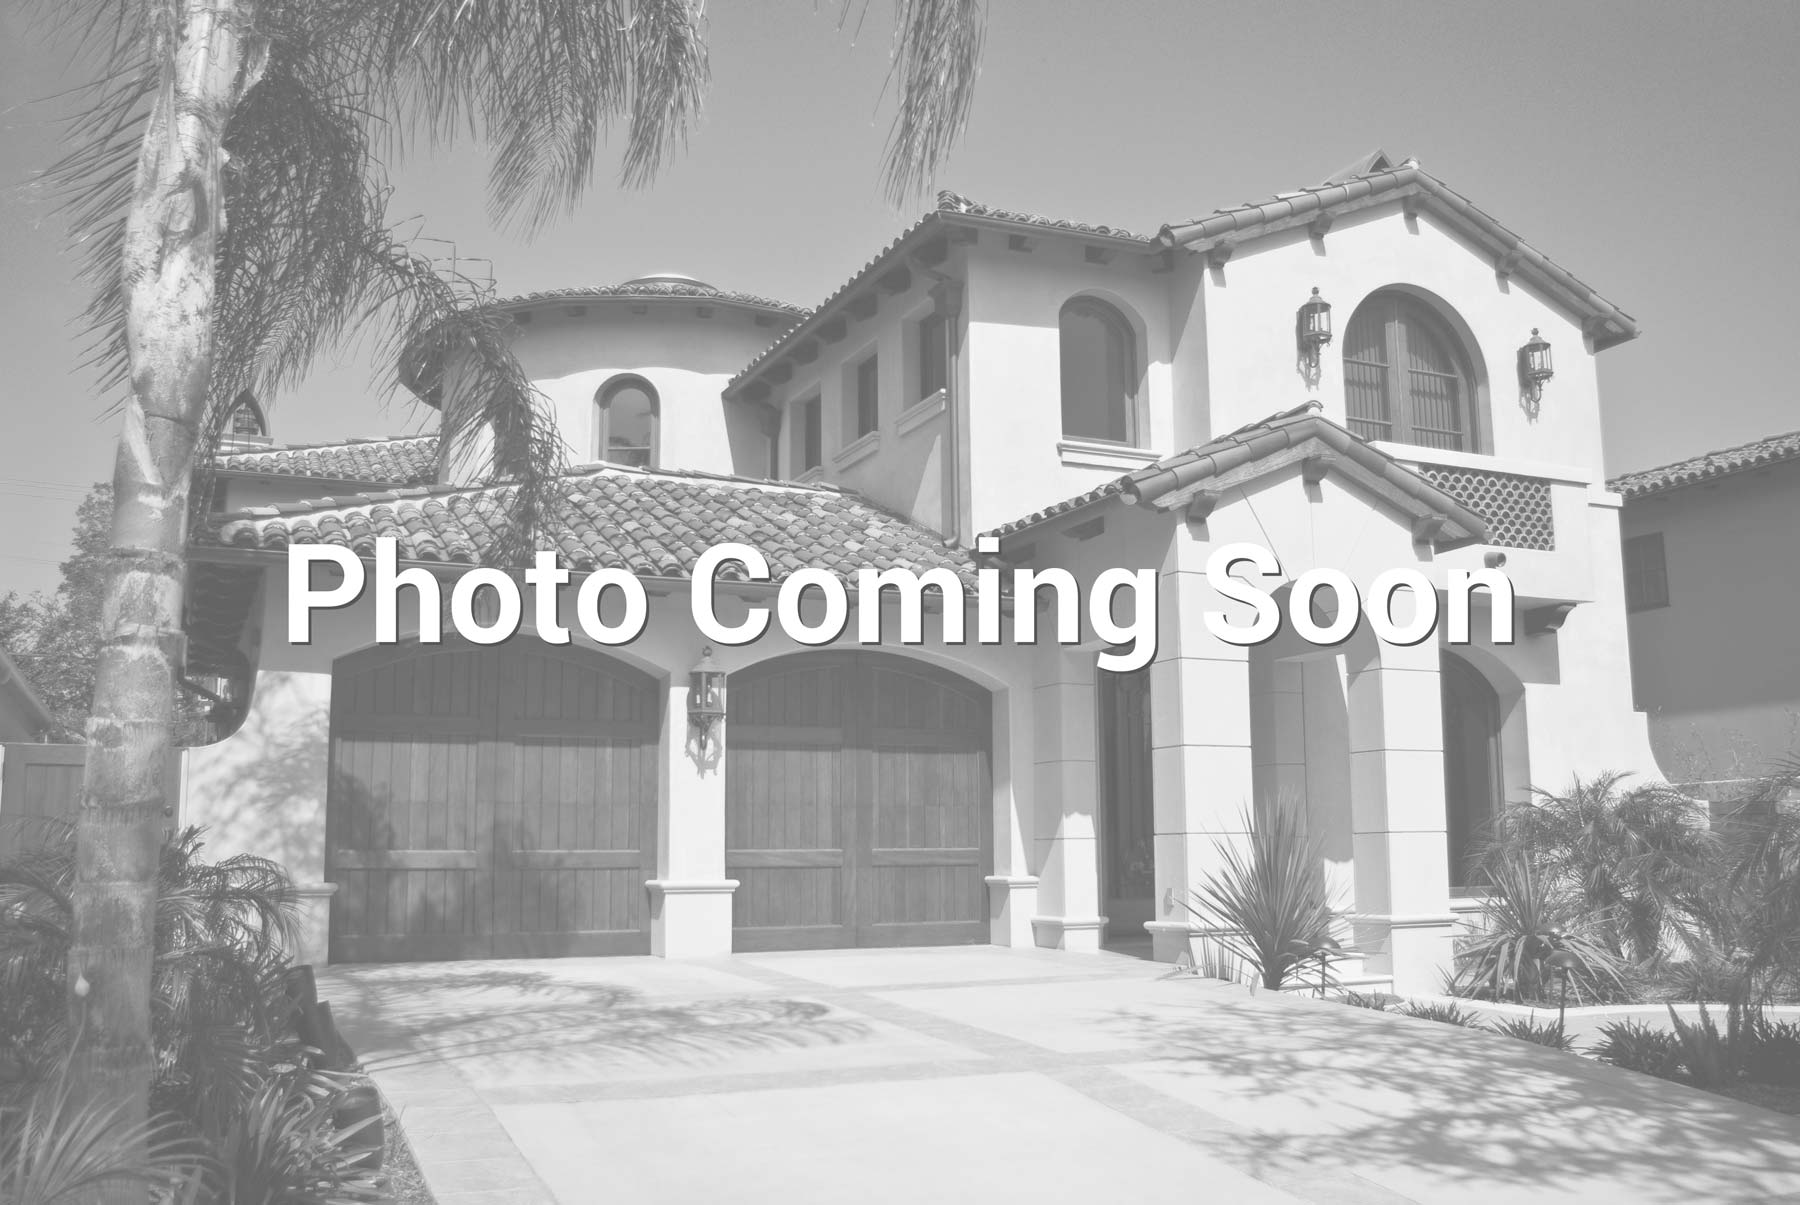 $639,000 - 3Br/1Ba -  for Sale in Not Applicable-619 (na619), El Monte